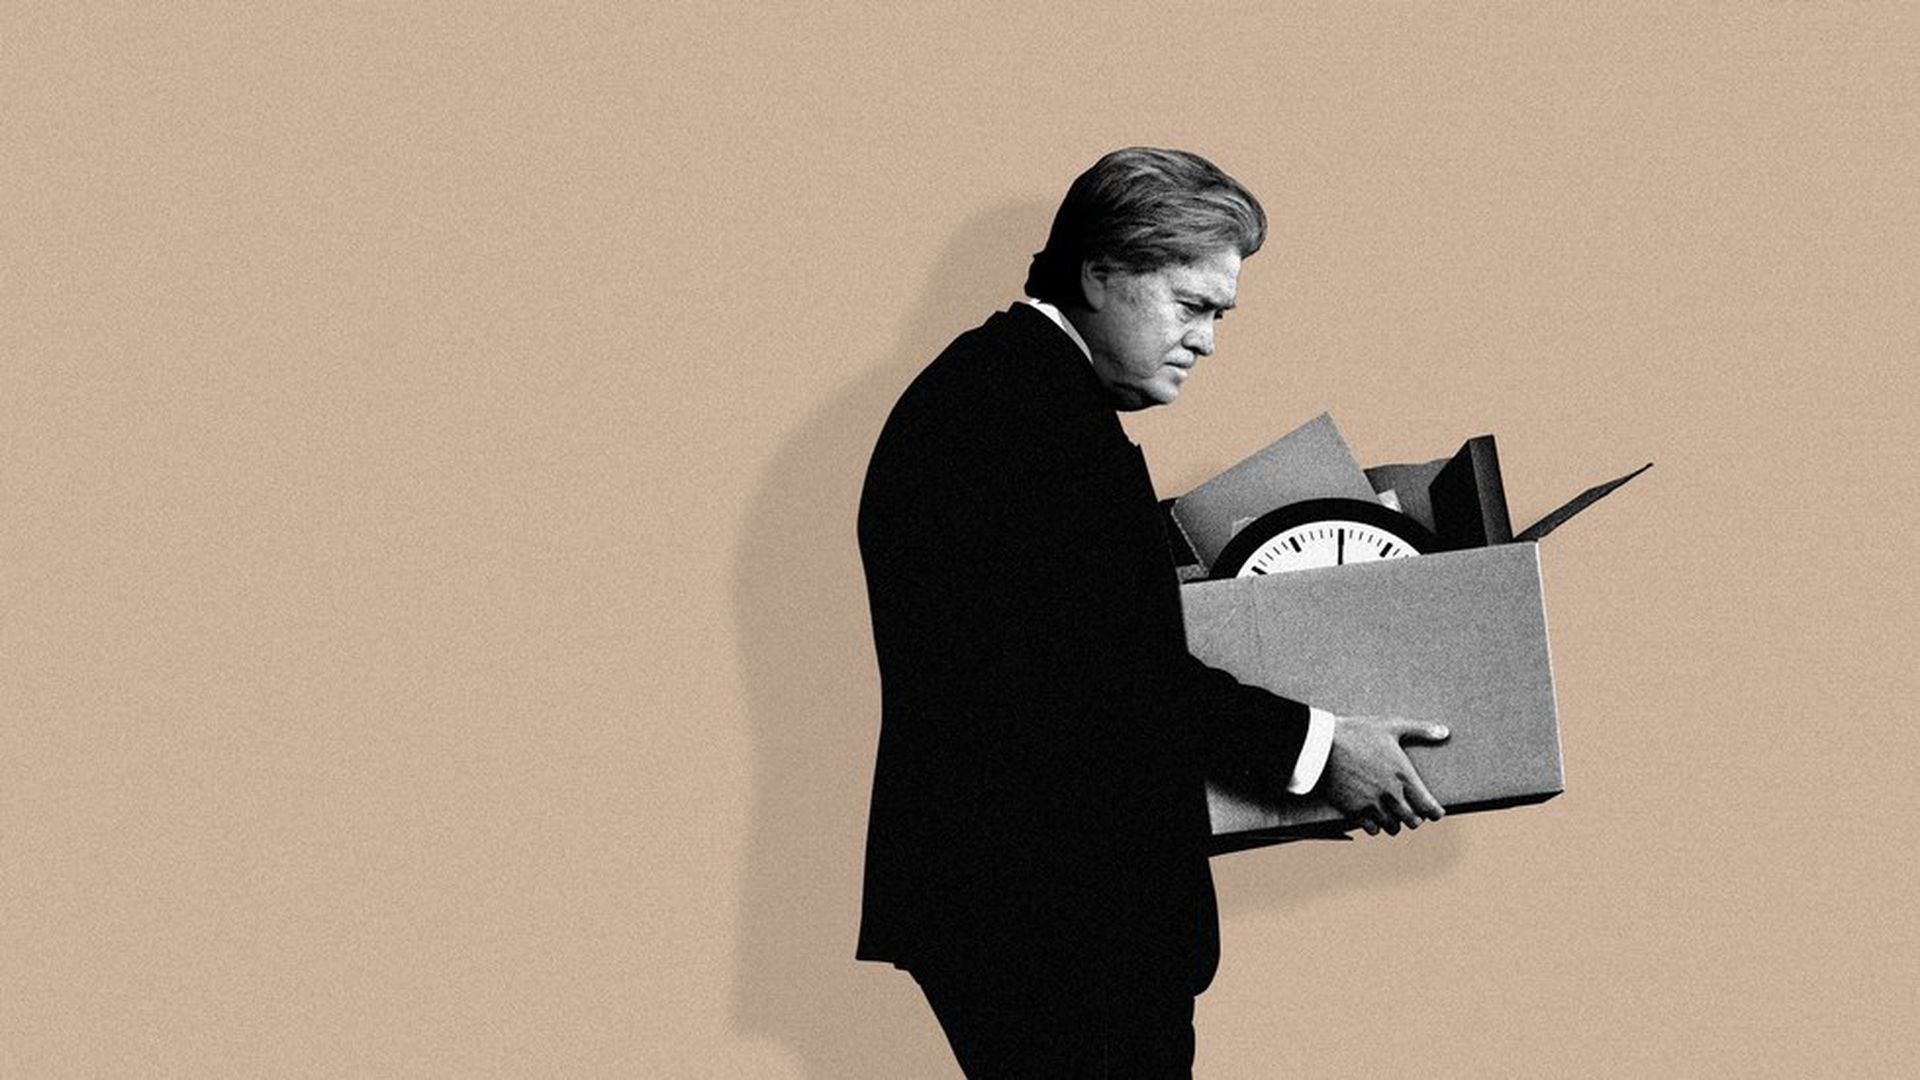 Steve Bannon packs up his things